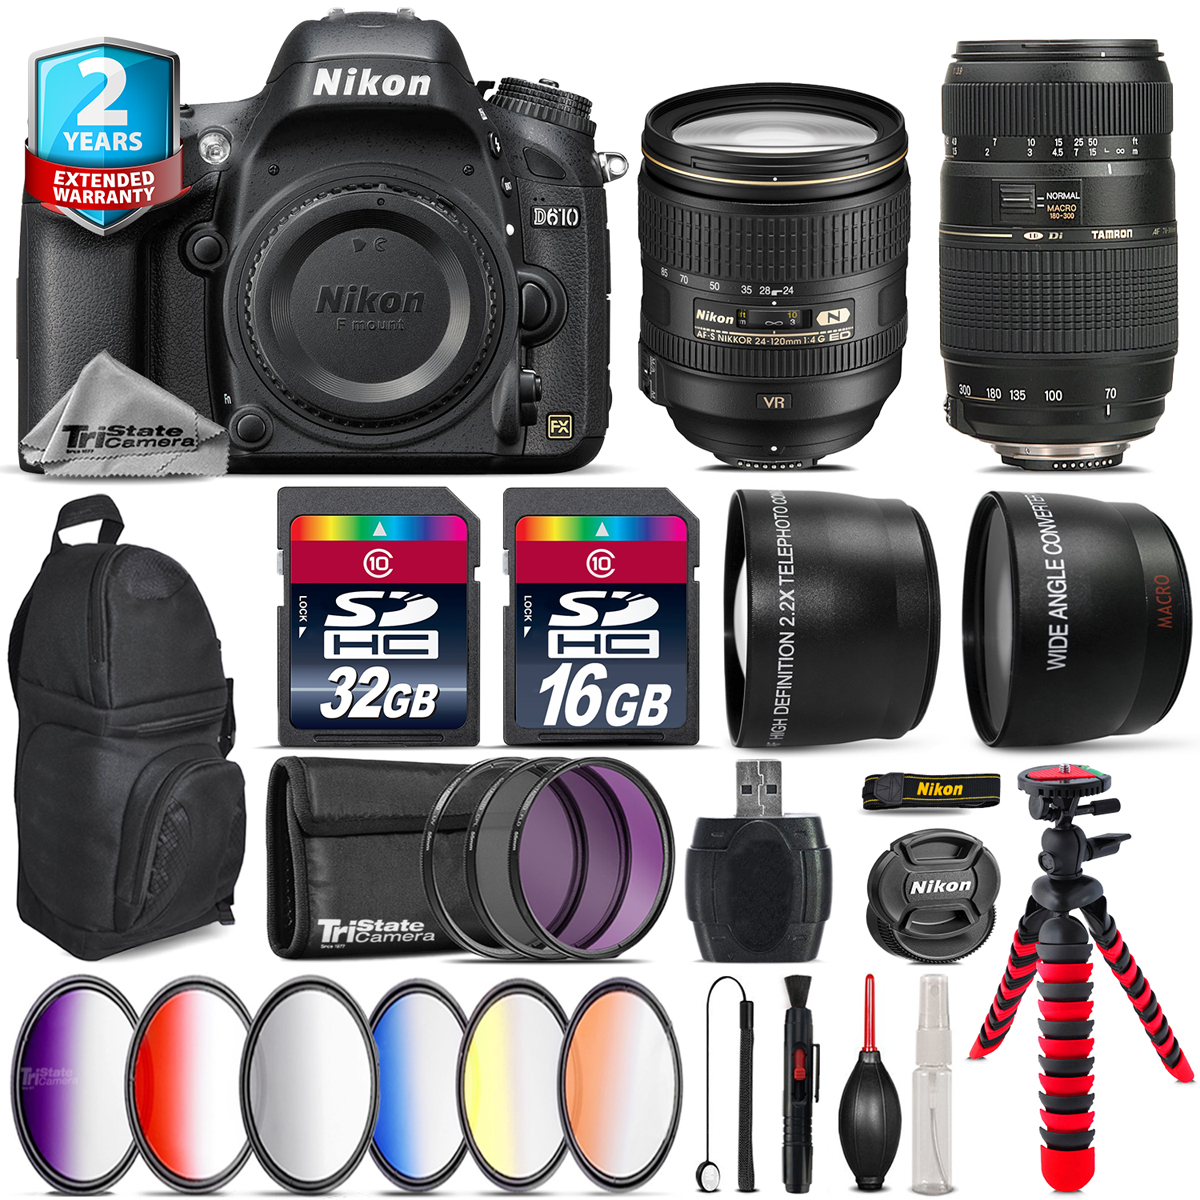 Nikon D610 DSLR Camera + AFS 24-120mm VR + Tamron 70-300mm + Backpack 48GB Kit by Tri StateCamera